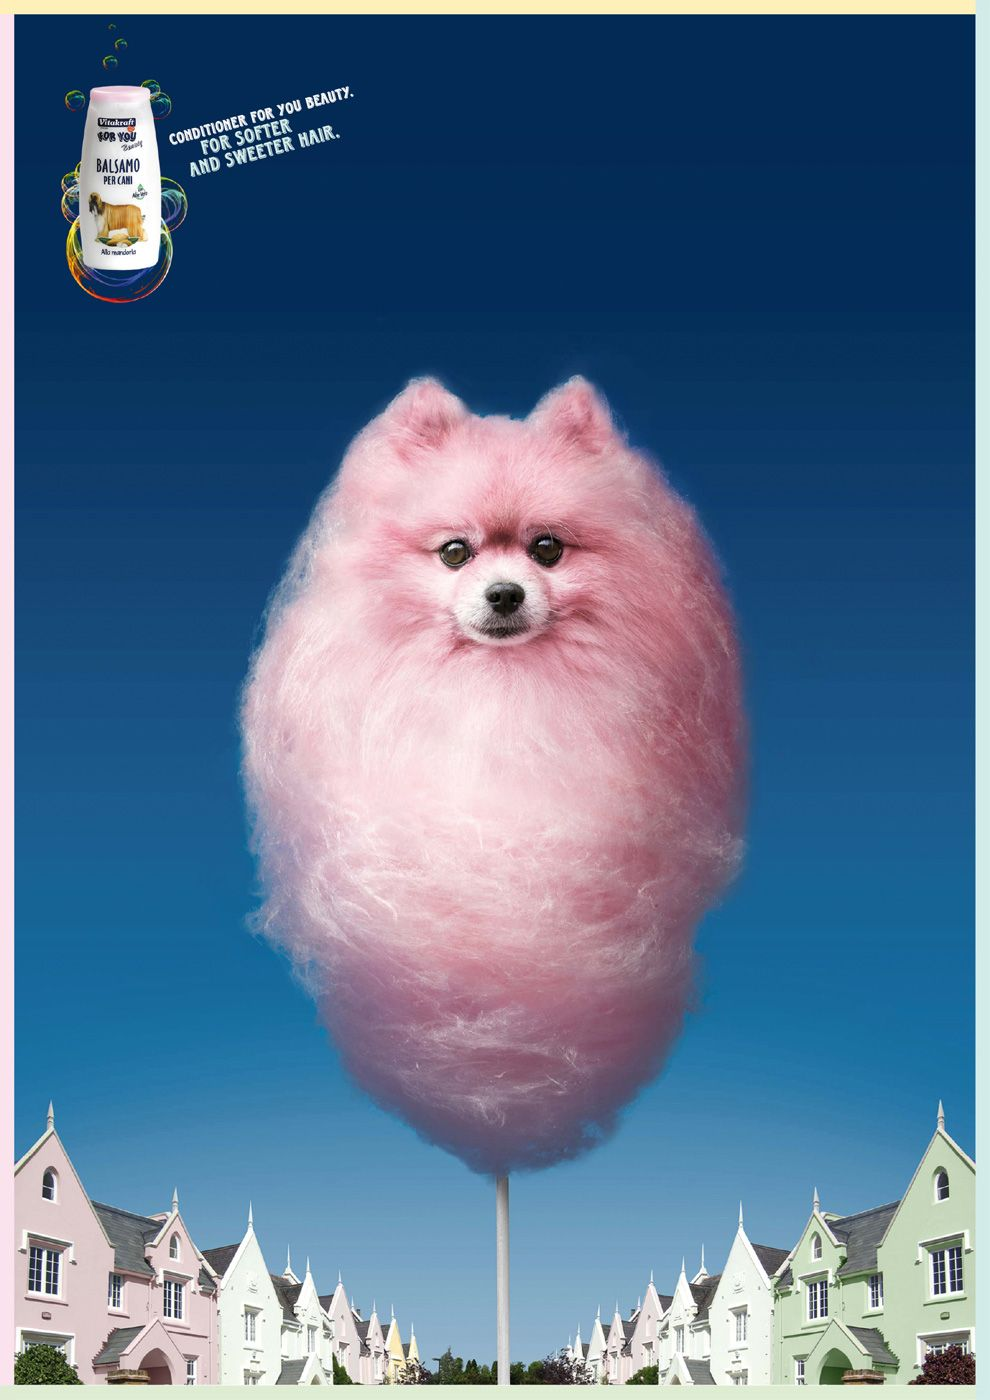 Dogs Of Italy And Their Creative Print Ad Campaigns Food And